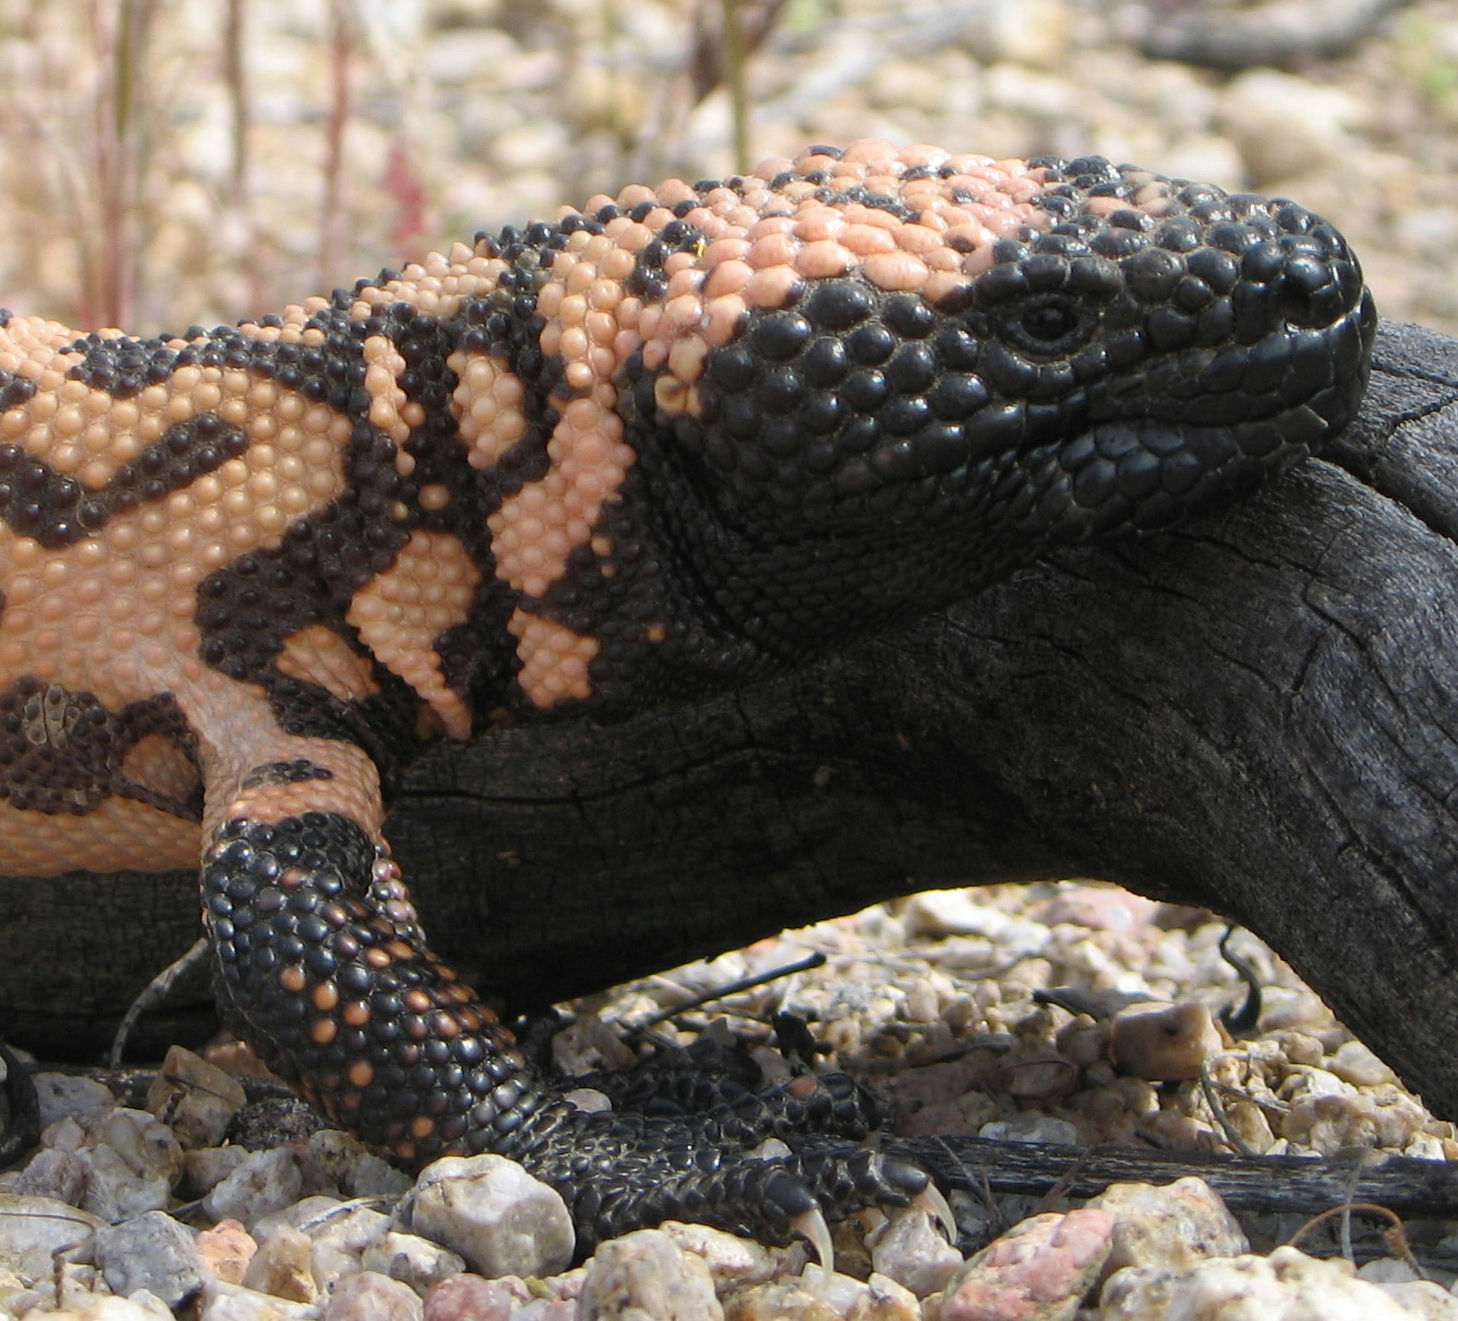 Description gila monster head